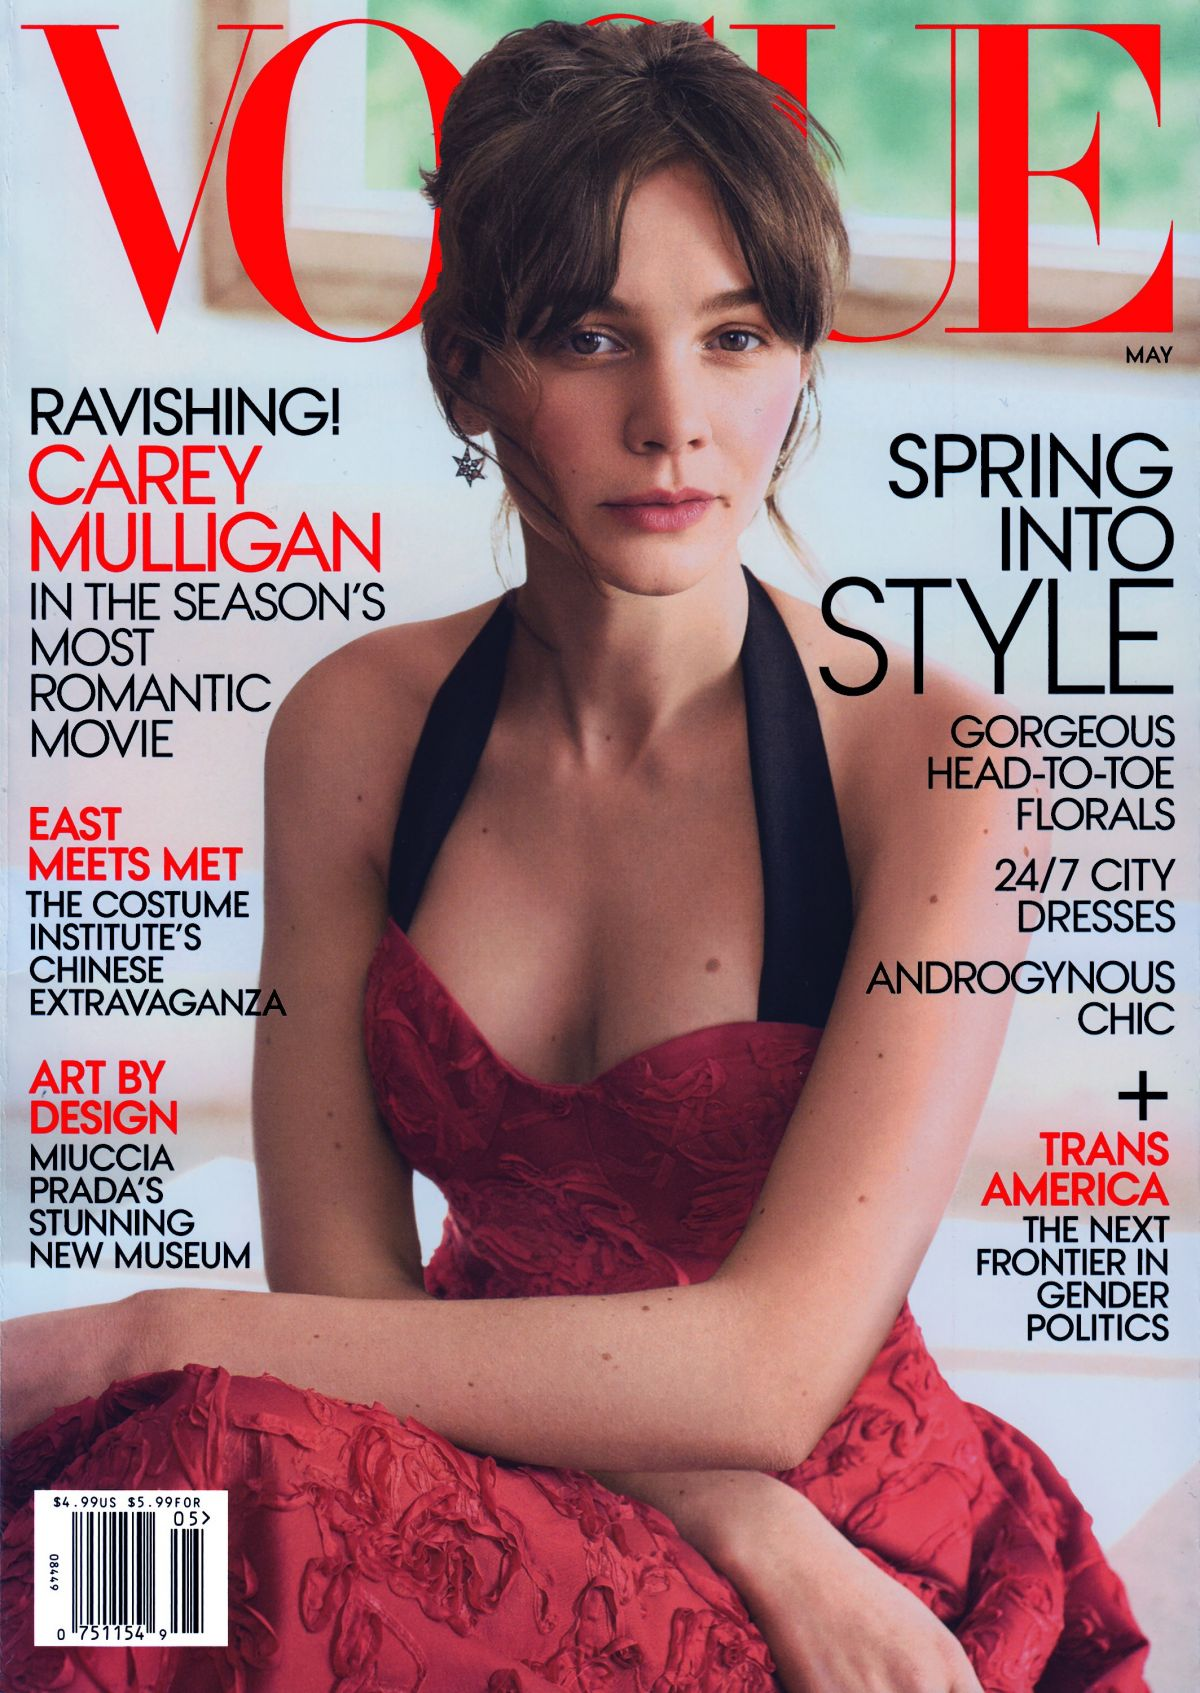 CAREY MULLIGAN on the Cover of Vogue Magazine, May 2015 Issue